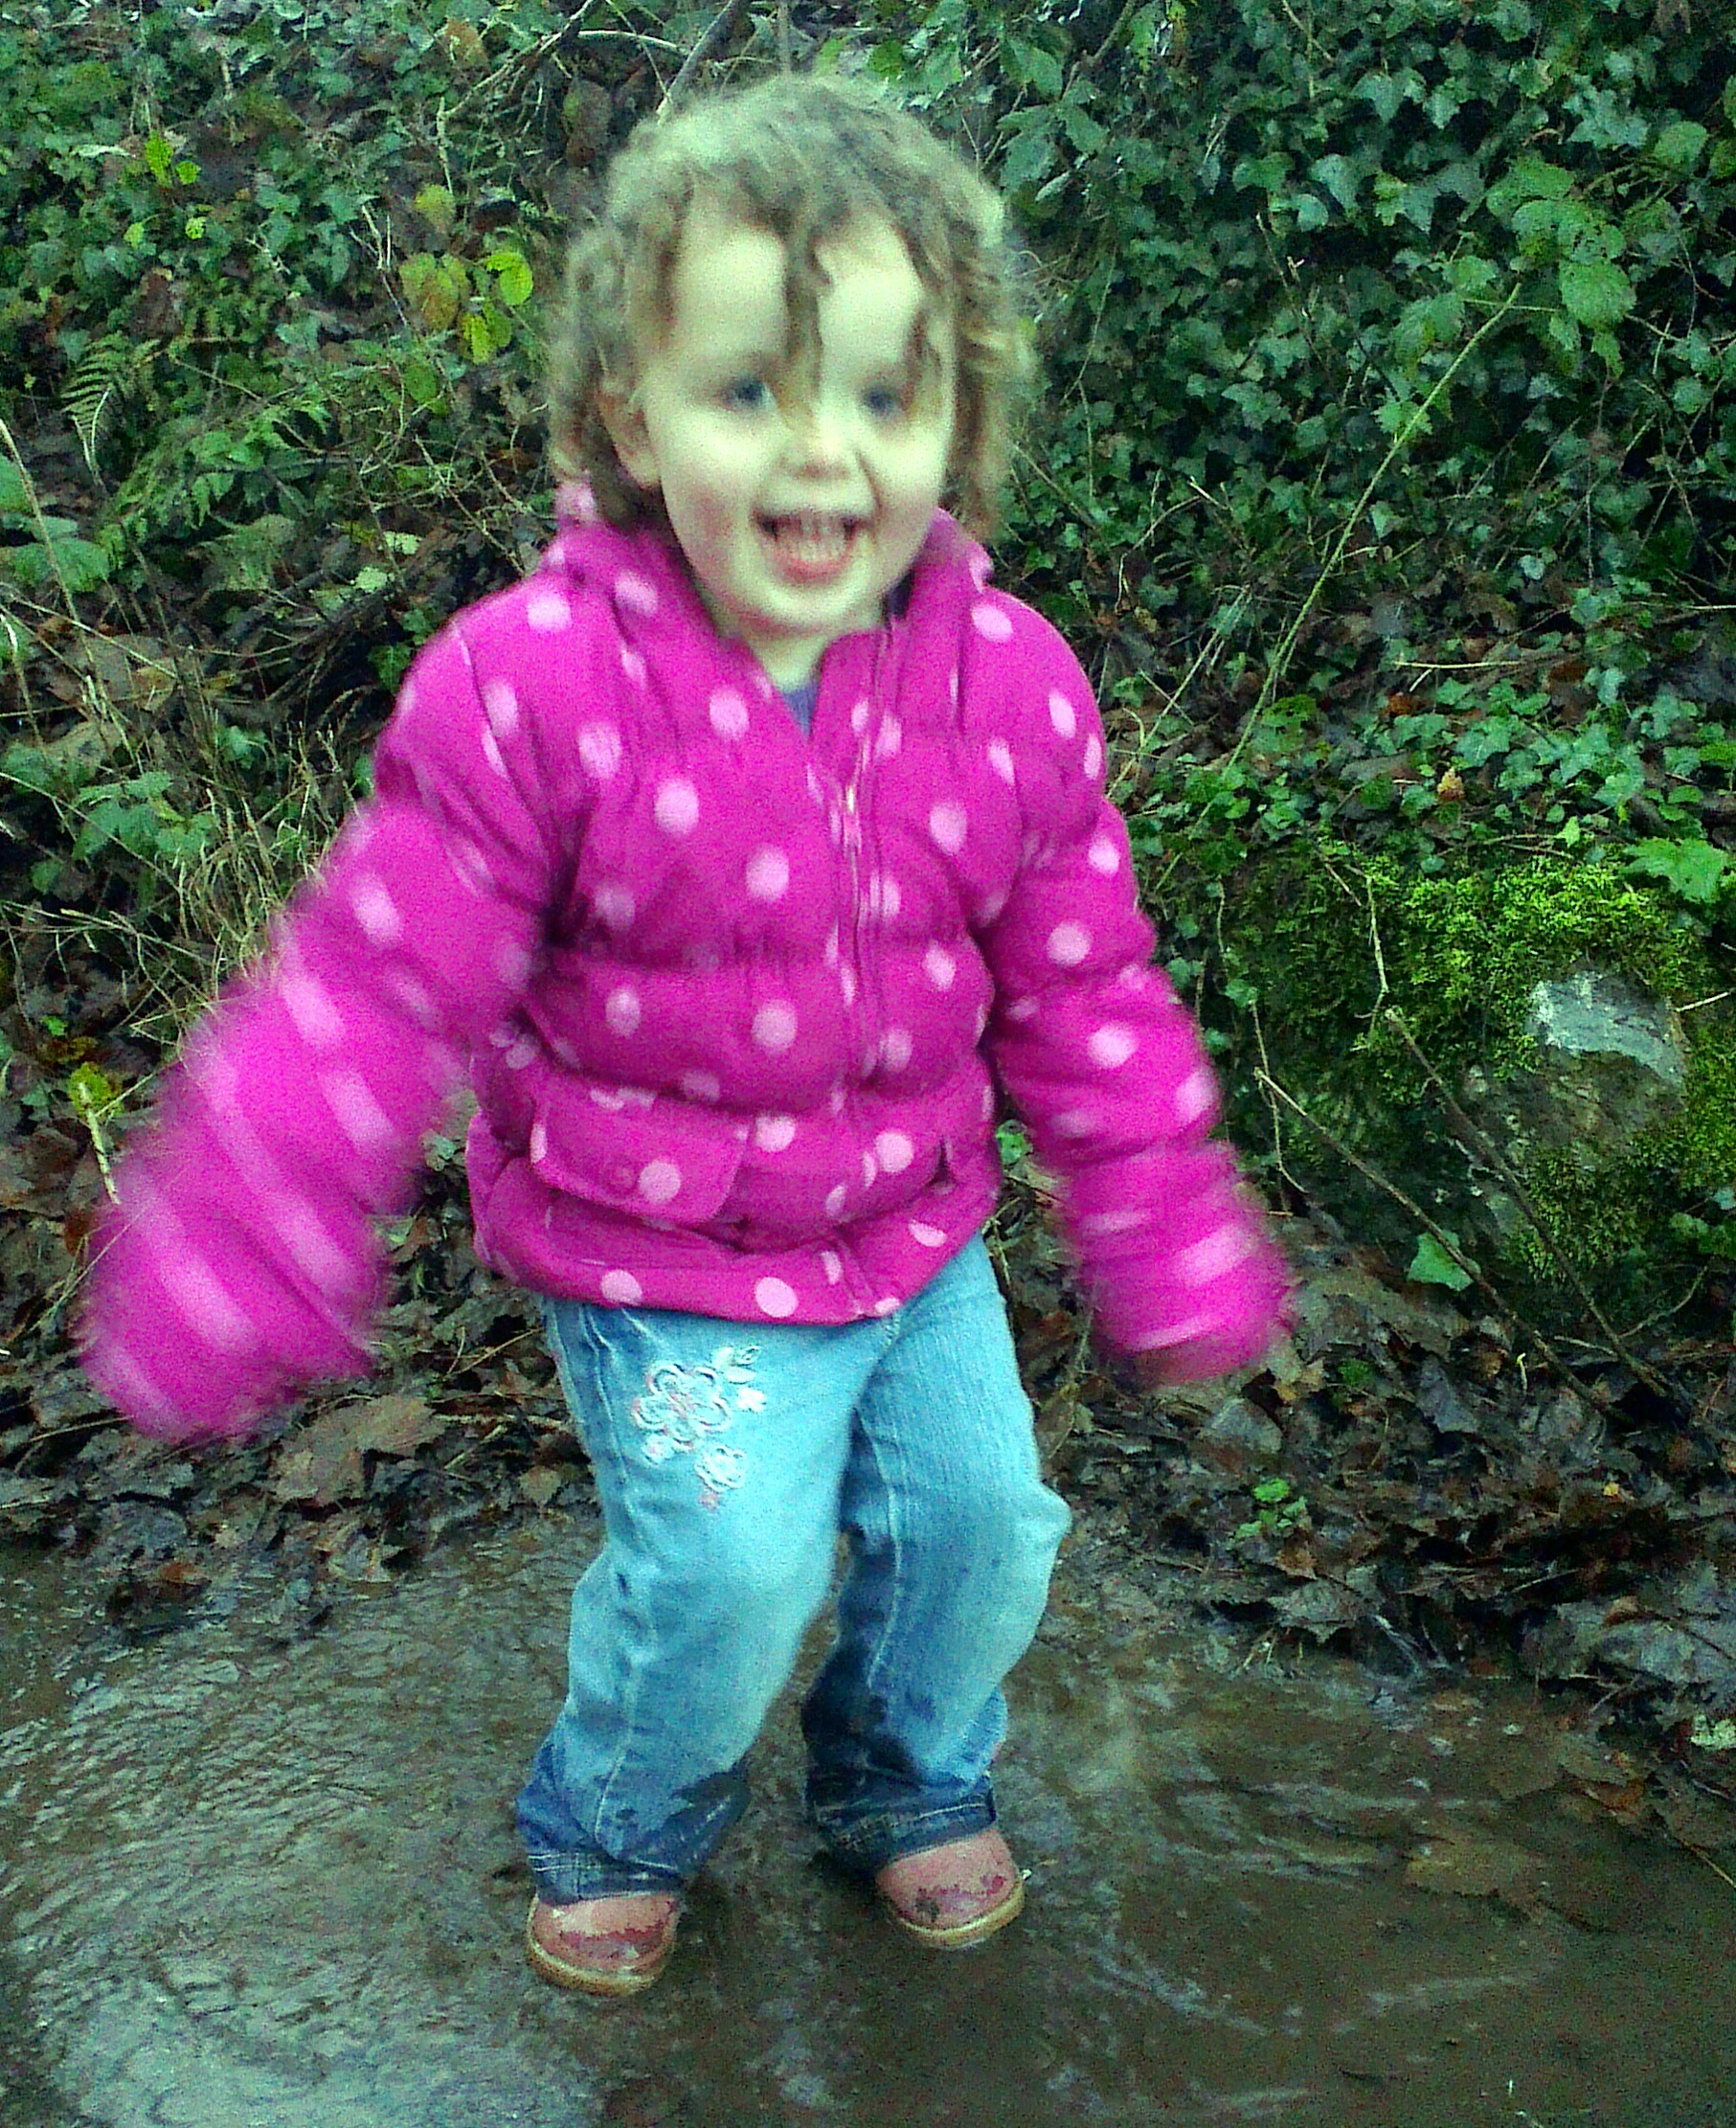 Puddle jumping with Katie